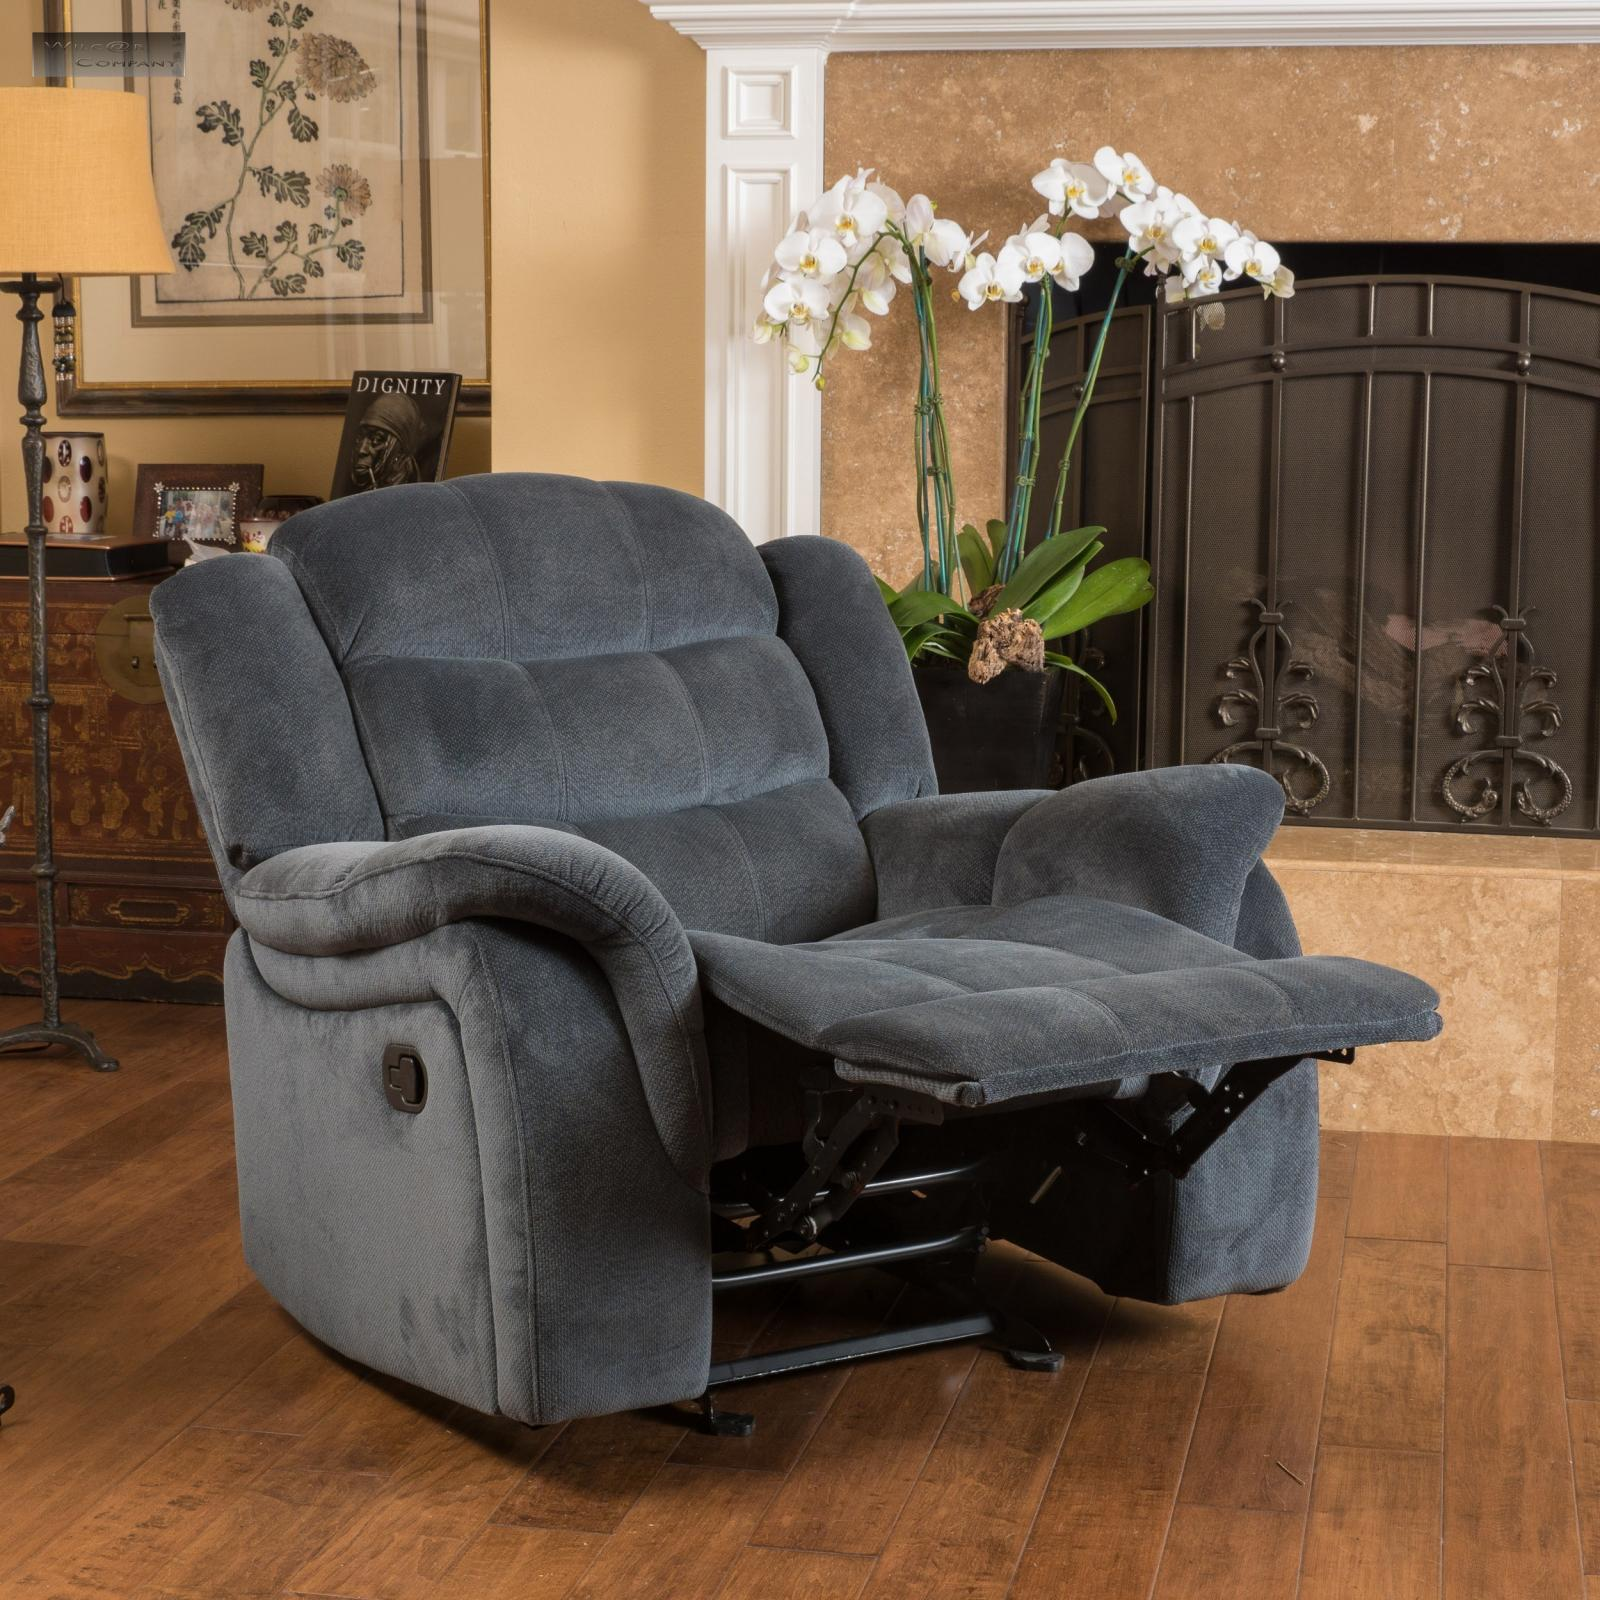 Gray Recliner Chair Brown Fabric Recliner Glider Lazy Chair Reclining Seat